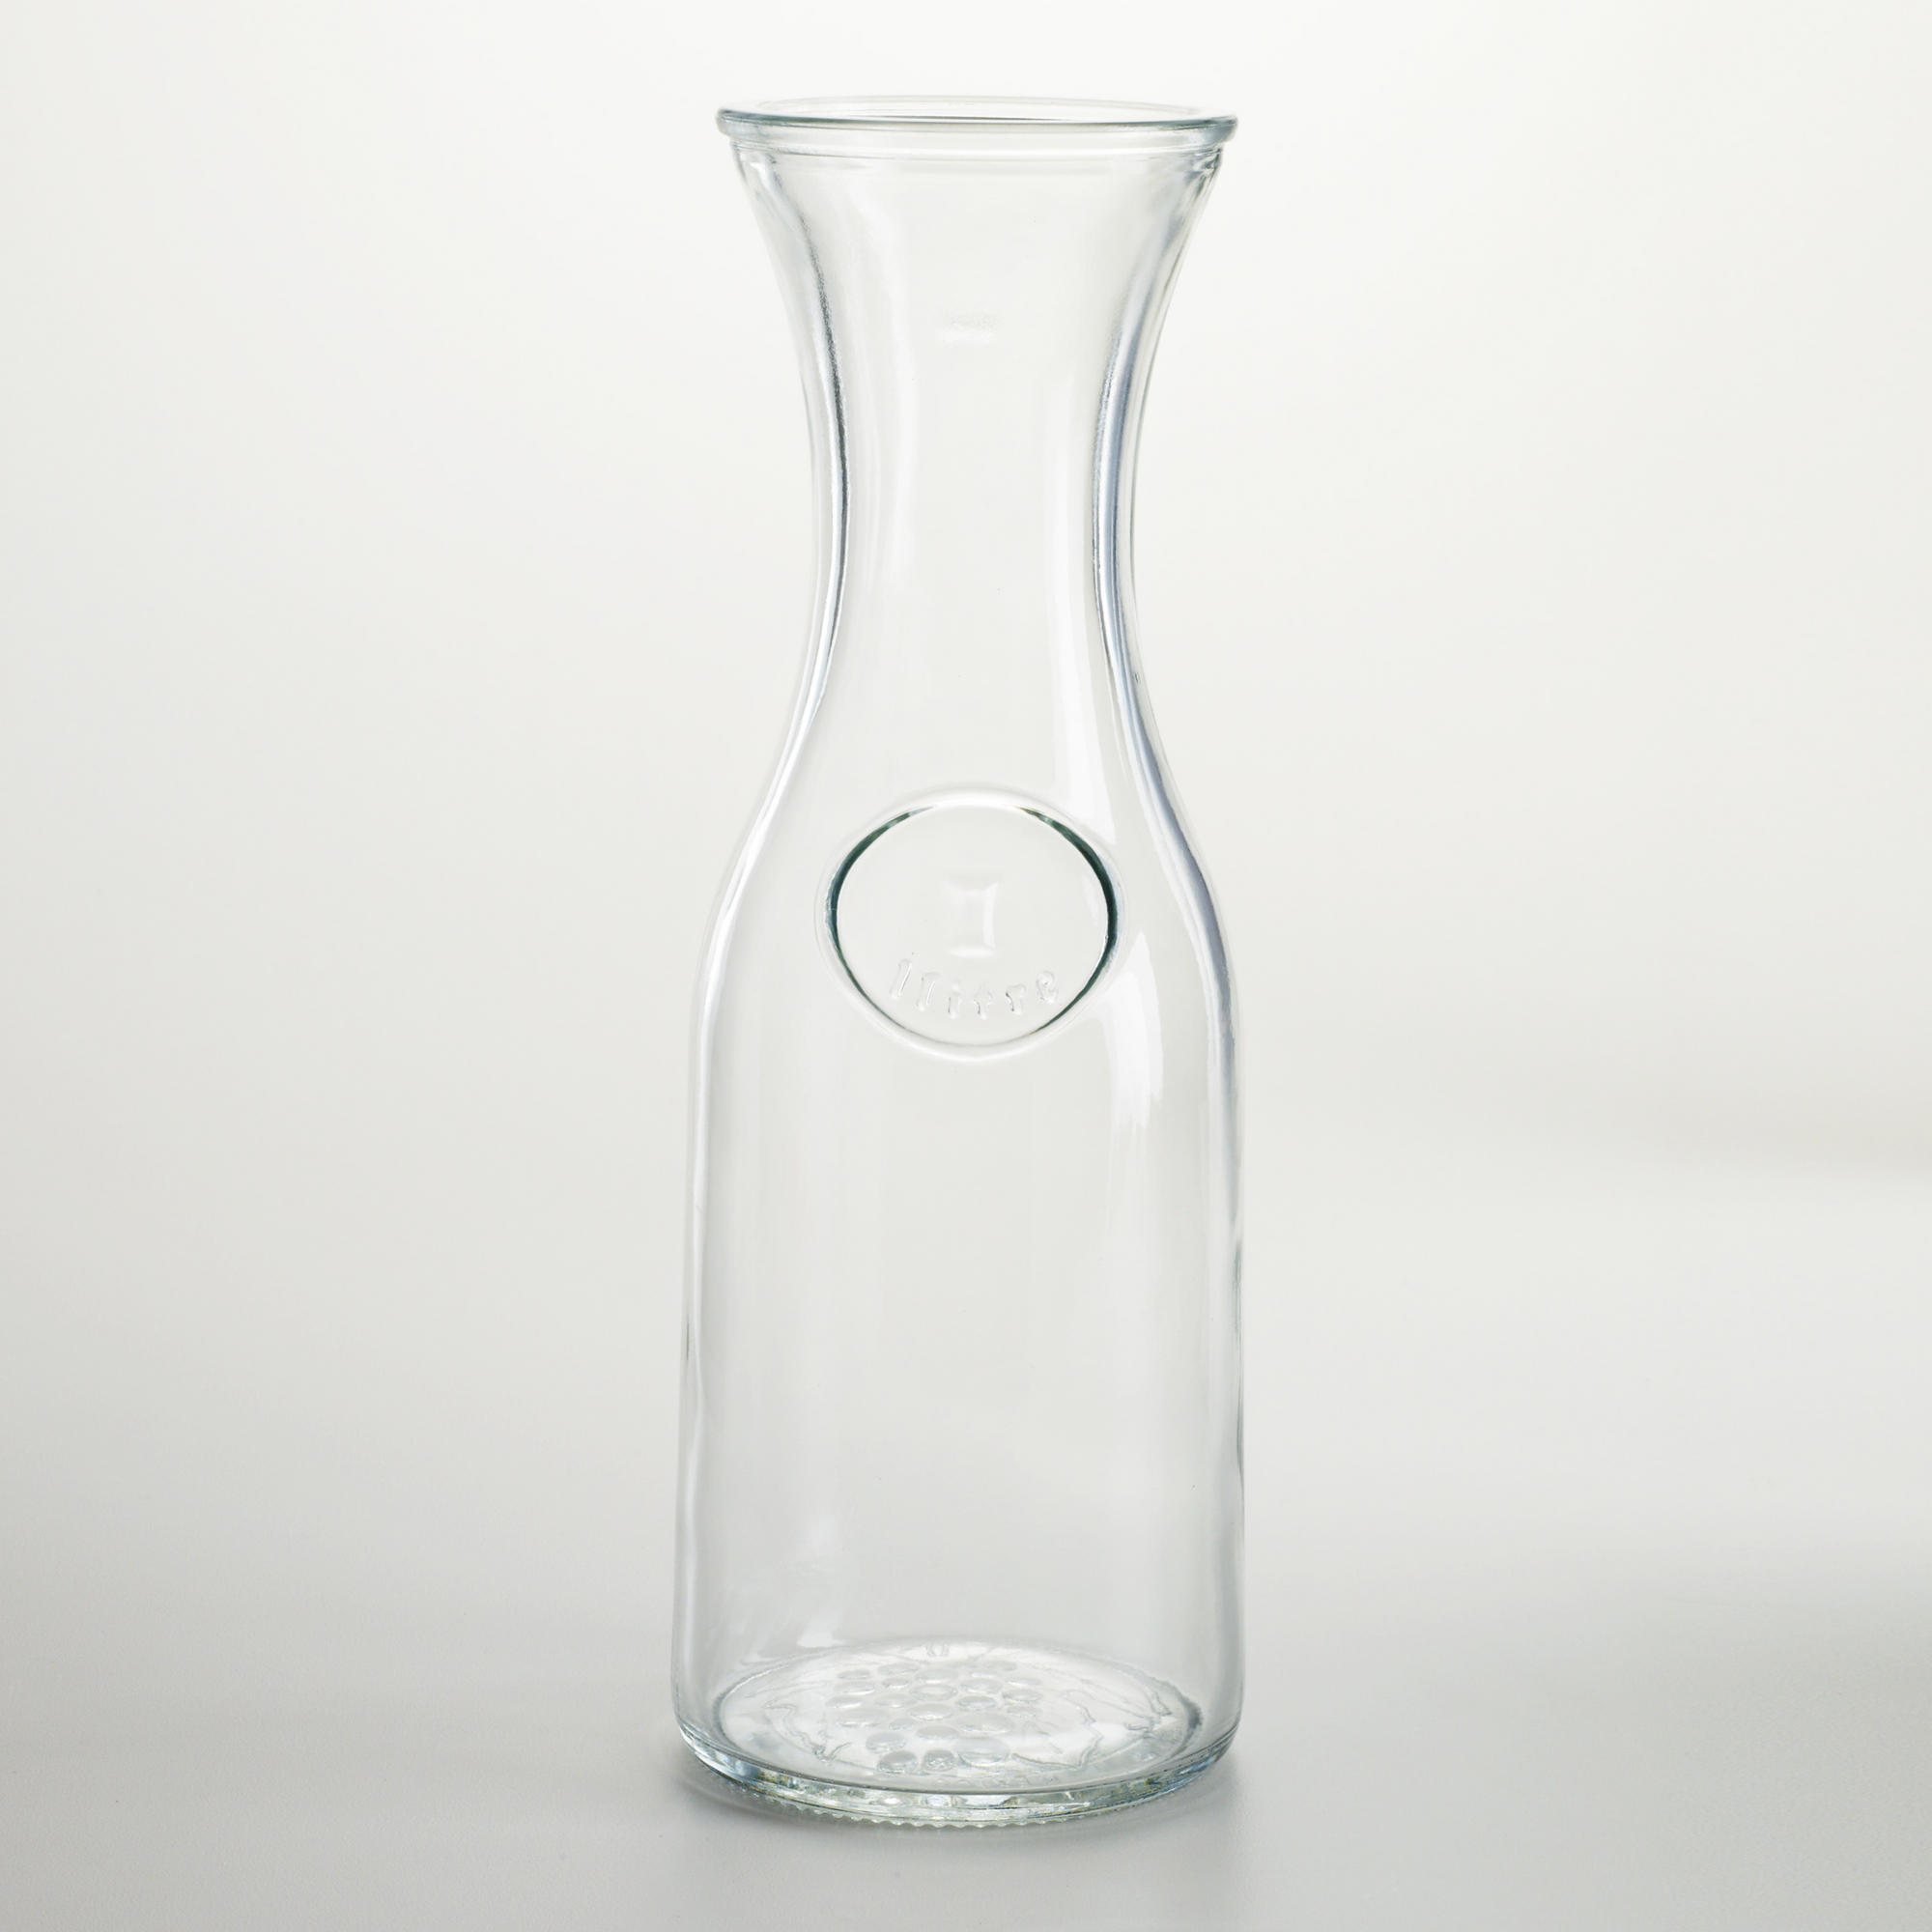 water carafe glass all about events. Black Bedroom Furniture Sets. Home Design Ideas